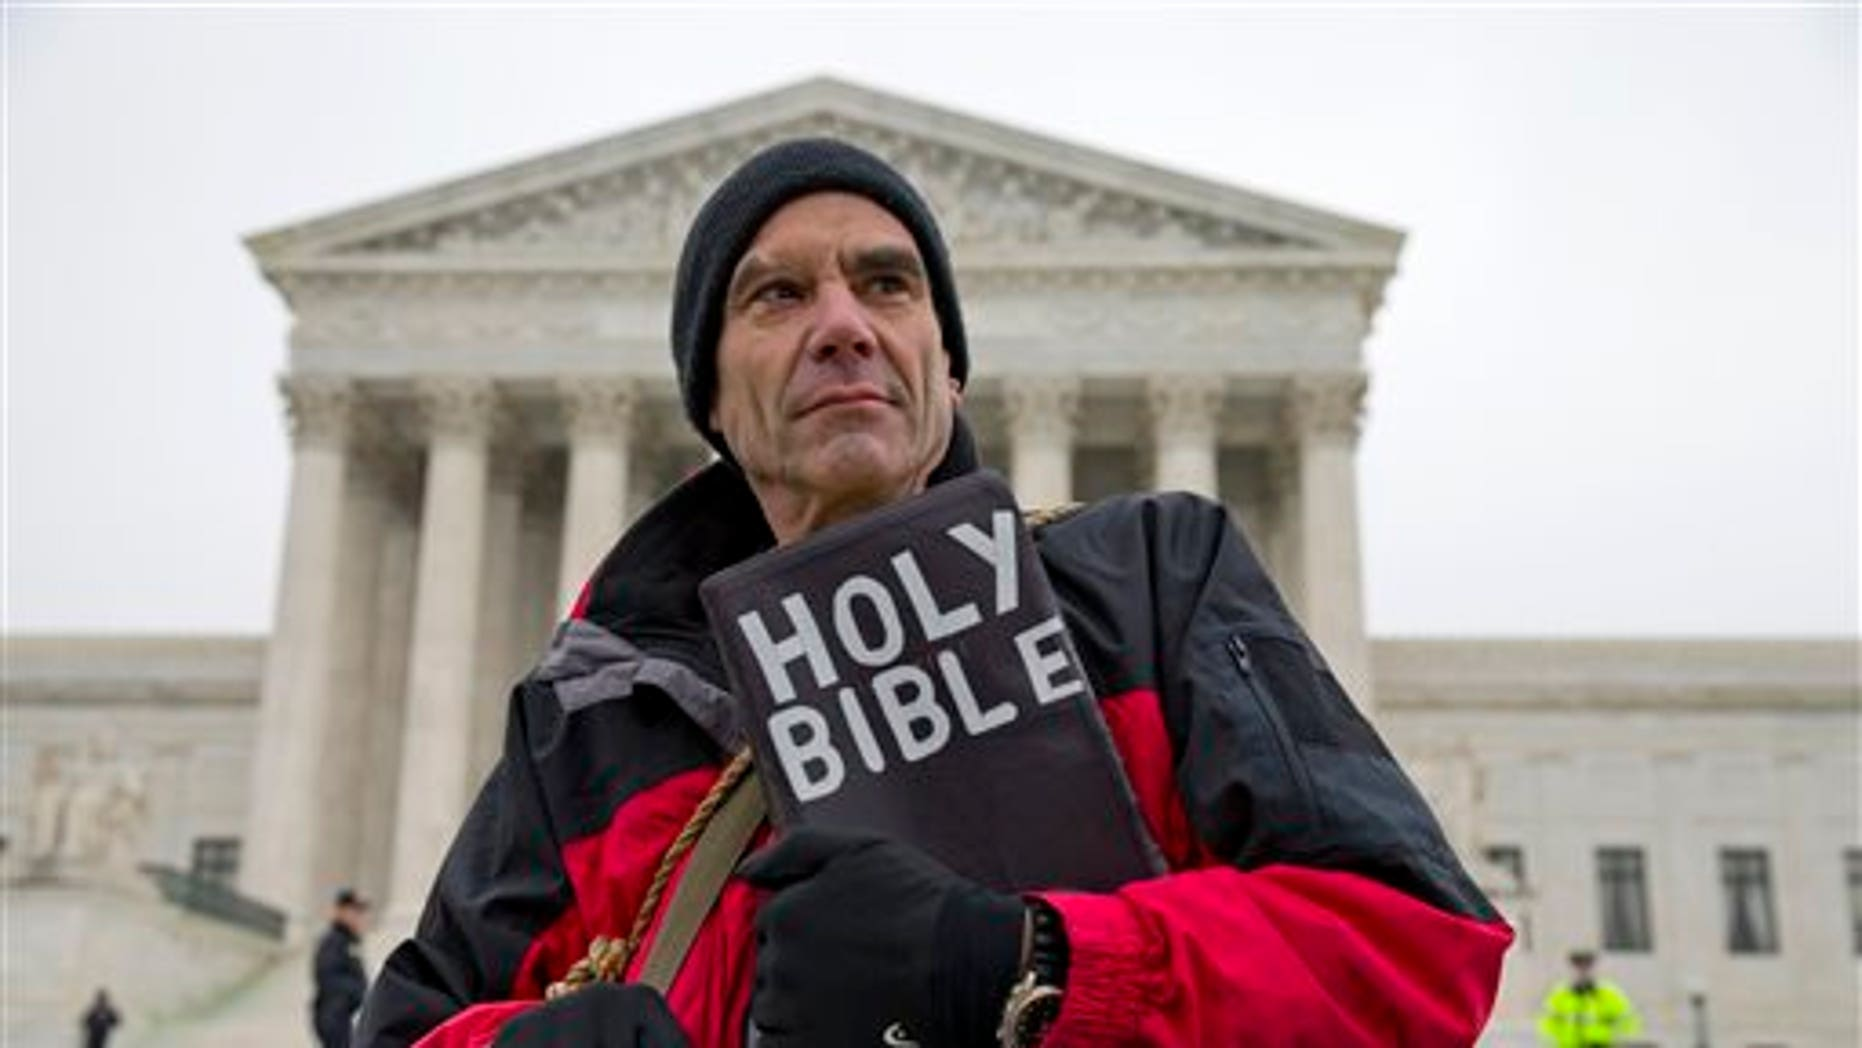 In this Jan. 15, 2014 file photo, Alan Hoyle, of Lincolnton, N.C., stands outside the Supreme Court in Washington, Wednesday, Jan. 15, 2014, where the court heard arguments on a state of Massachusetts law setting a 35-foot (10 meter) protest-free zone outside abortion clinics. (AP Photo/ Evan Vucci, File)